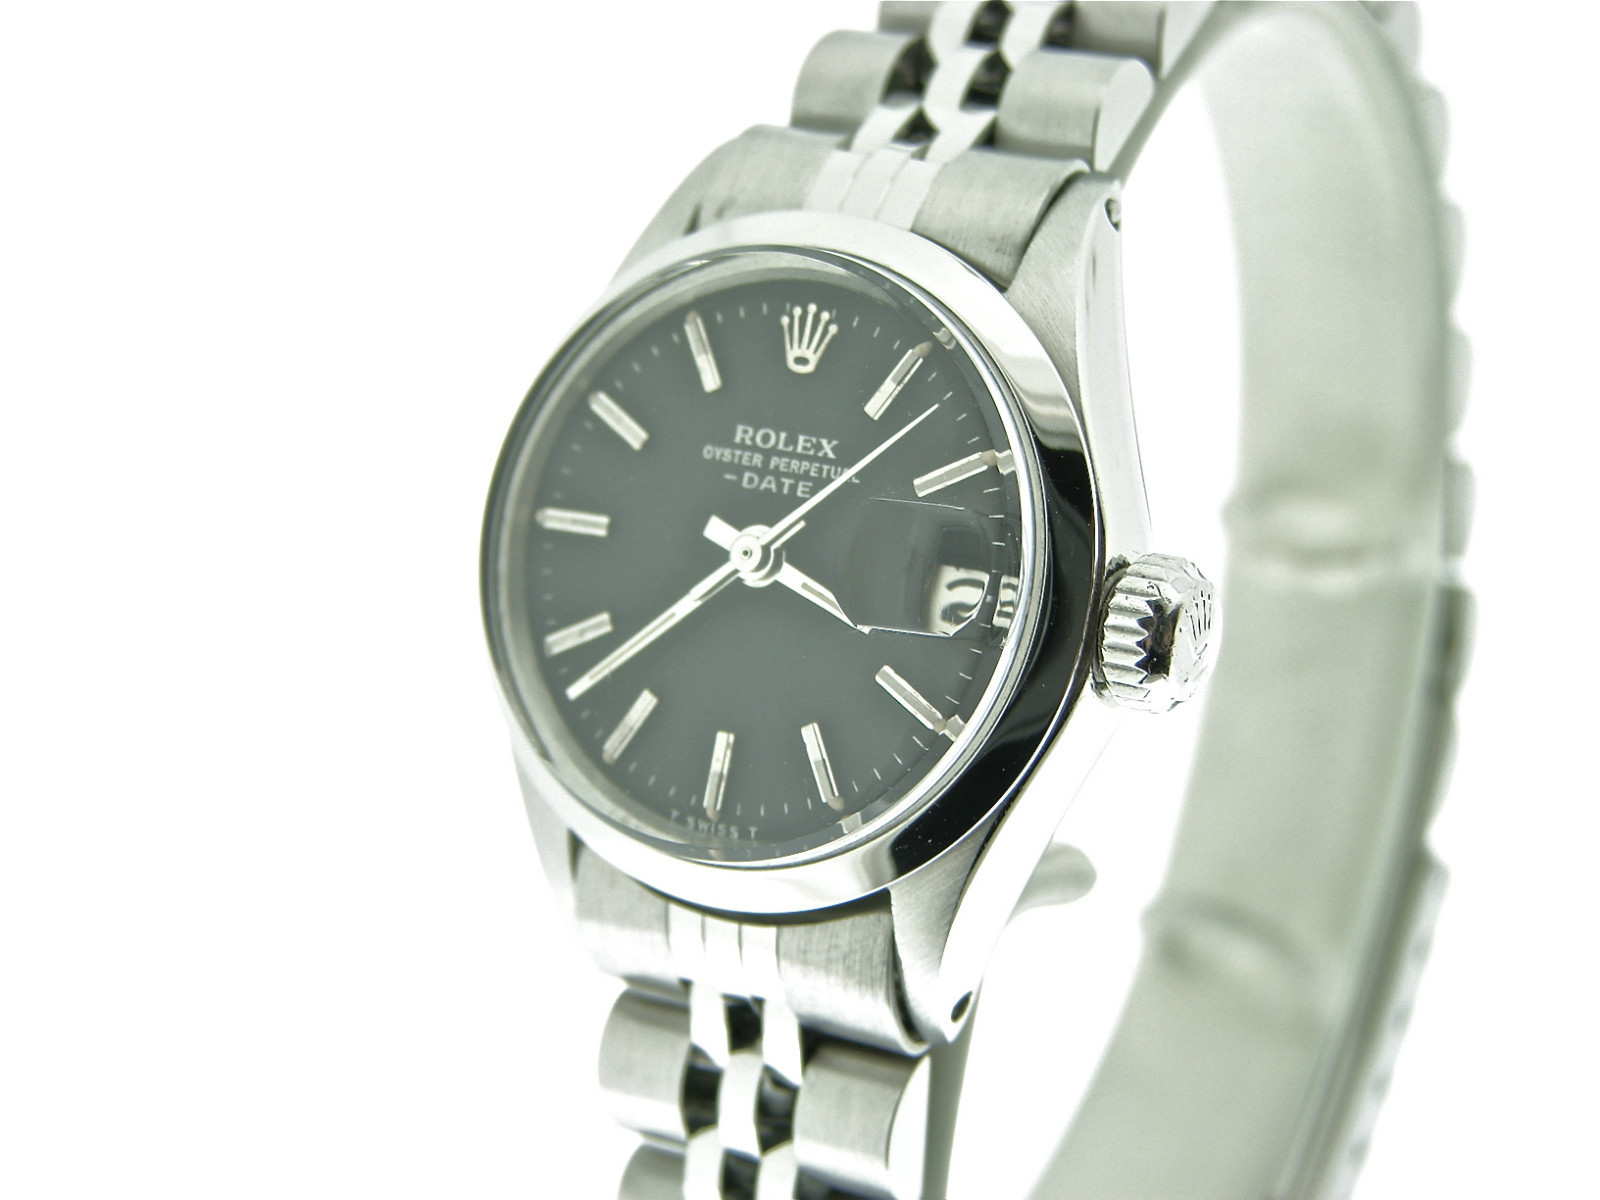 Ladies Rolex stainless steel date watch with black dial 6519